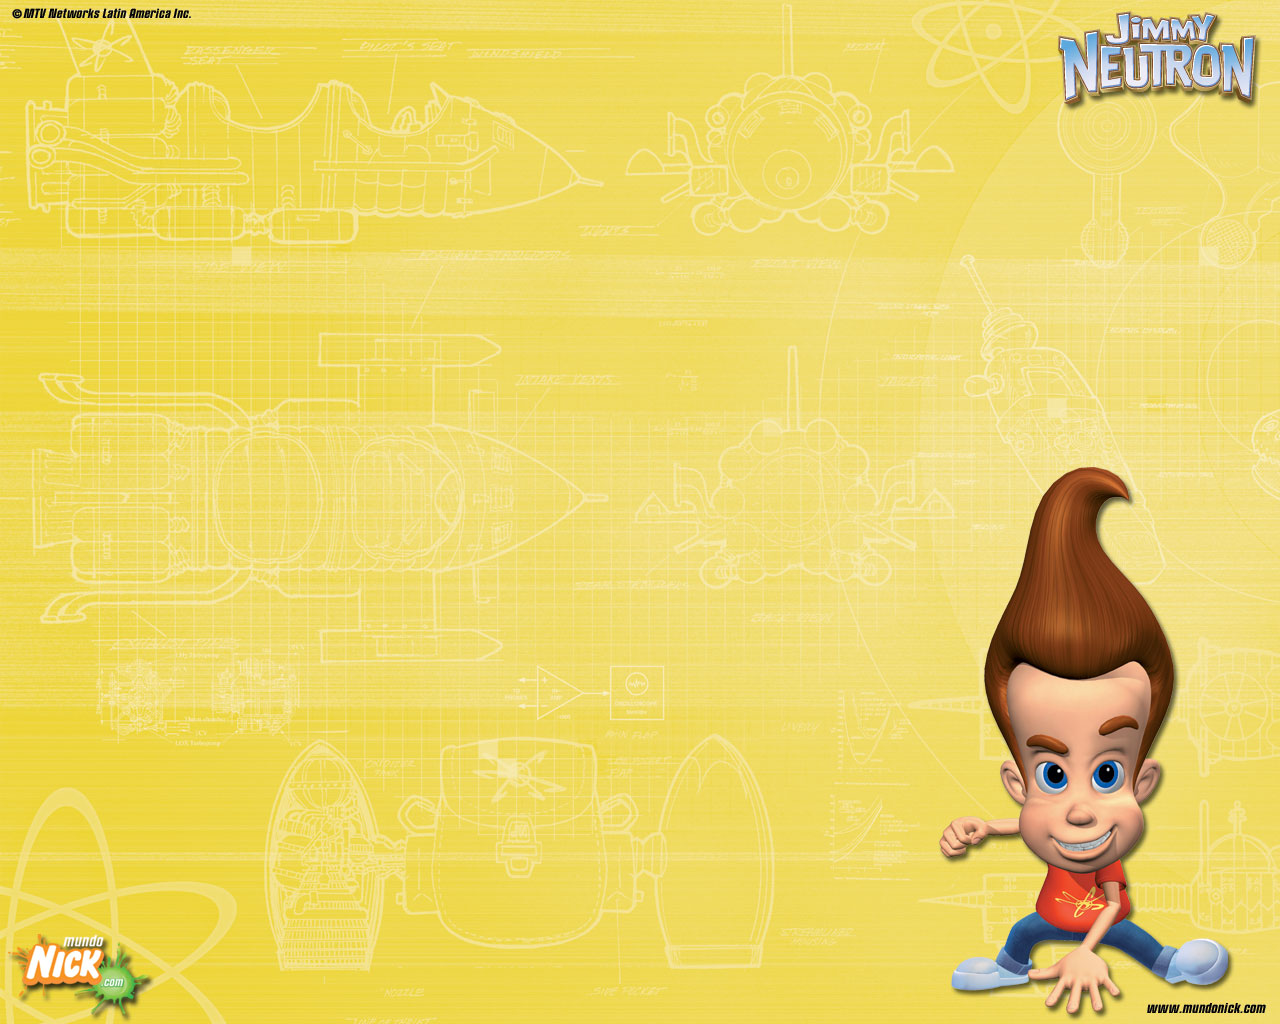 Jimmy Neutron Boy Genius - Pictures, posters, news and videos on your ...